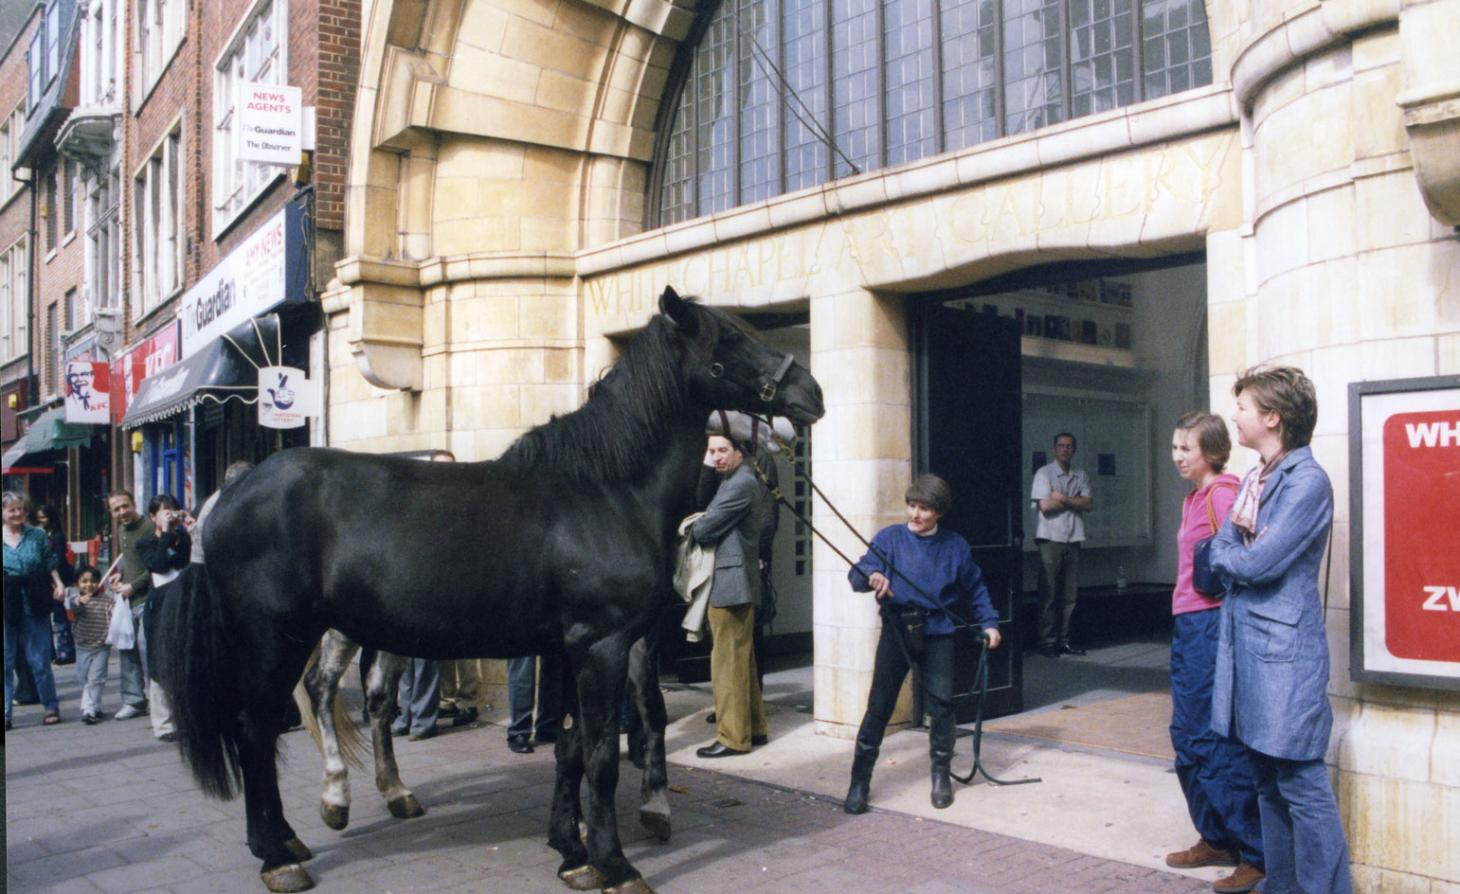 horse entering the Whitechapel Gallery foyer for Jannis Kounelis exhibition, 'A Short History of Performance'in April 2002